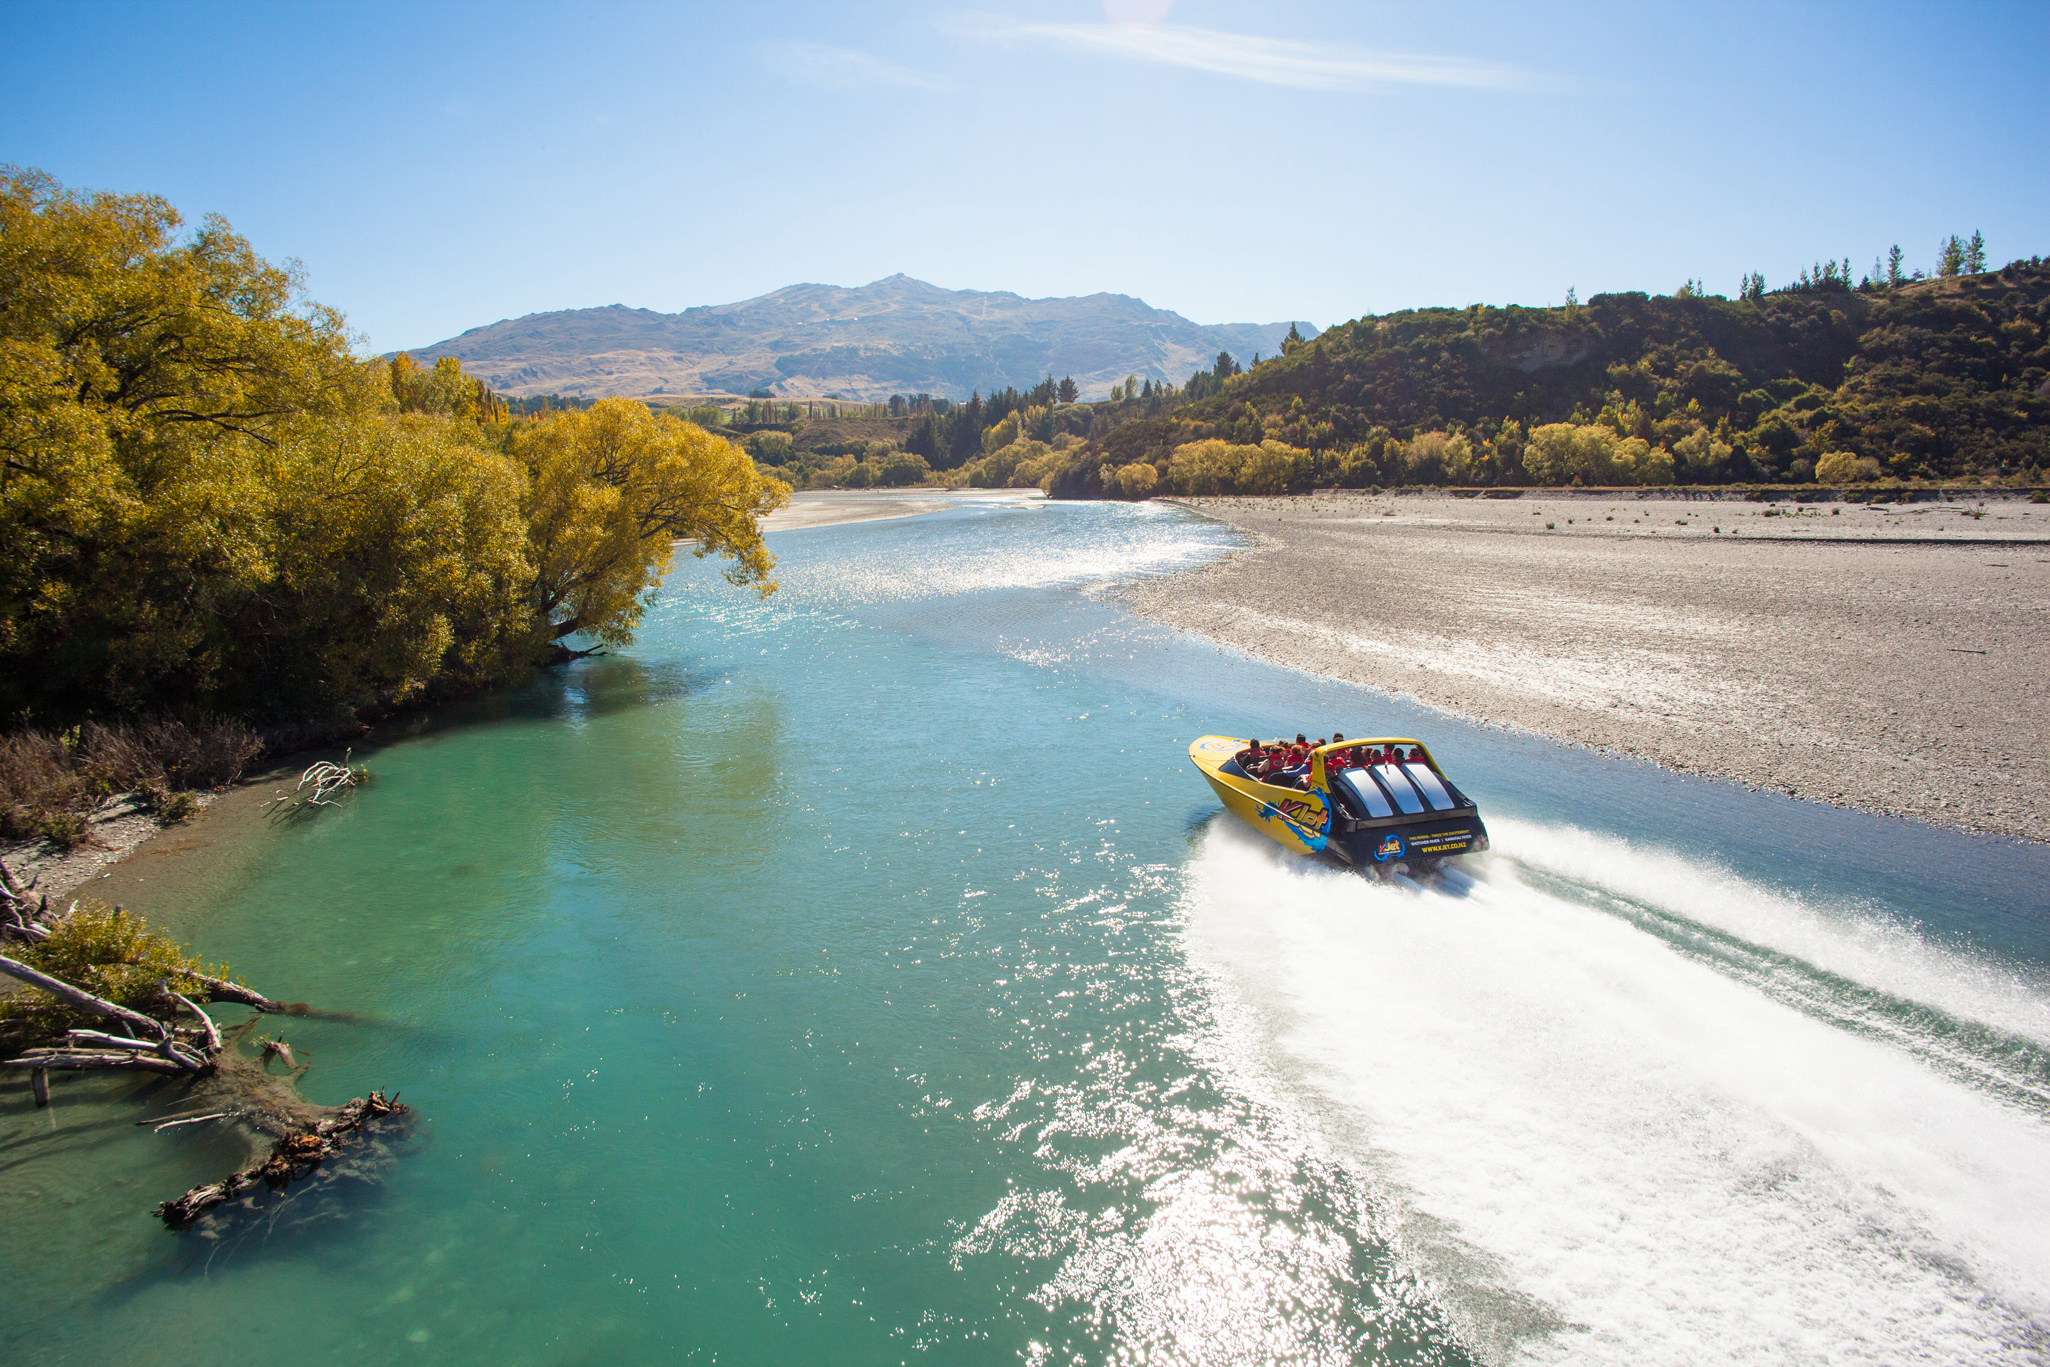 New zealand delight Tour Packages - Book honeymoon ,family,adventure tour packages to New zealand delight |Travel Knits